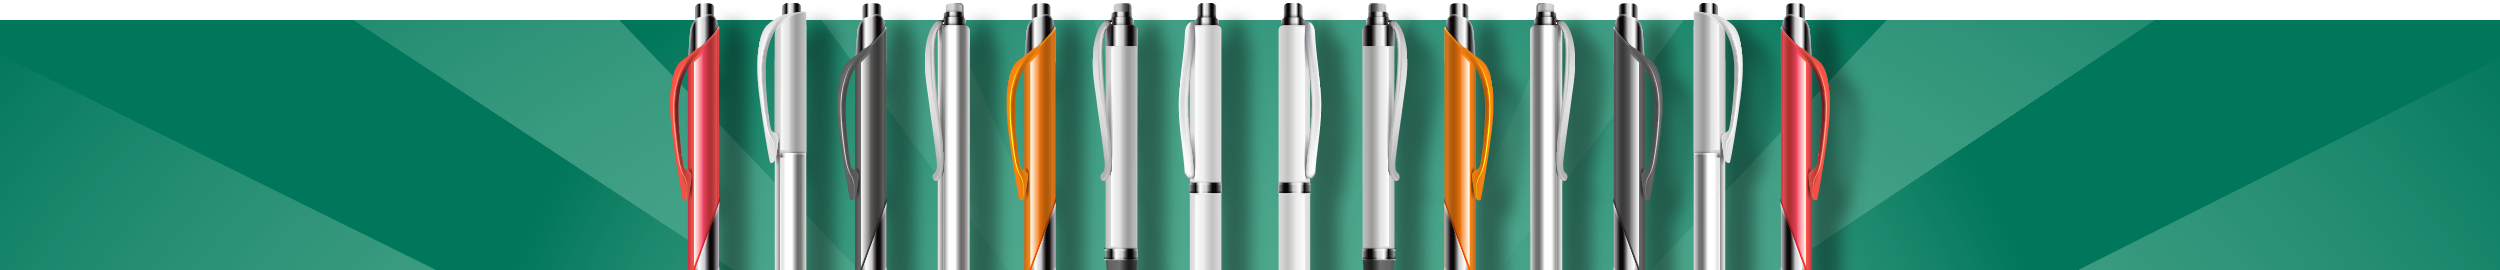 Pens | Promotional Products | Minuteman Press Norwich